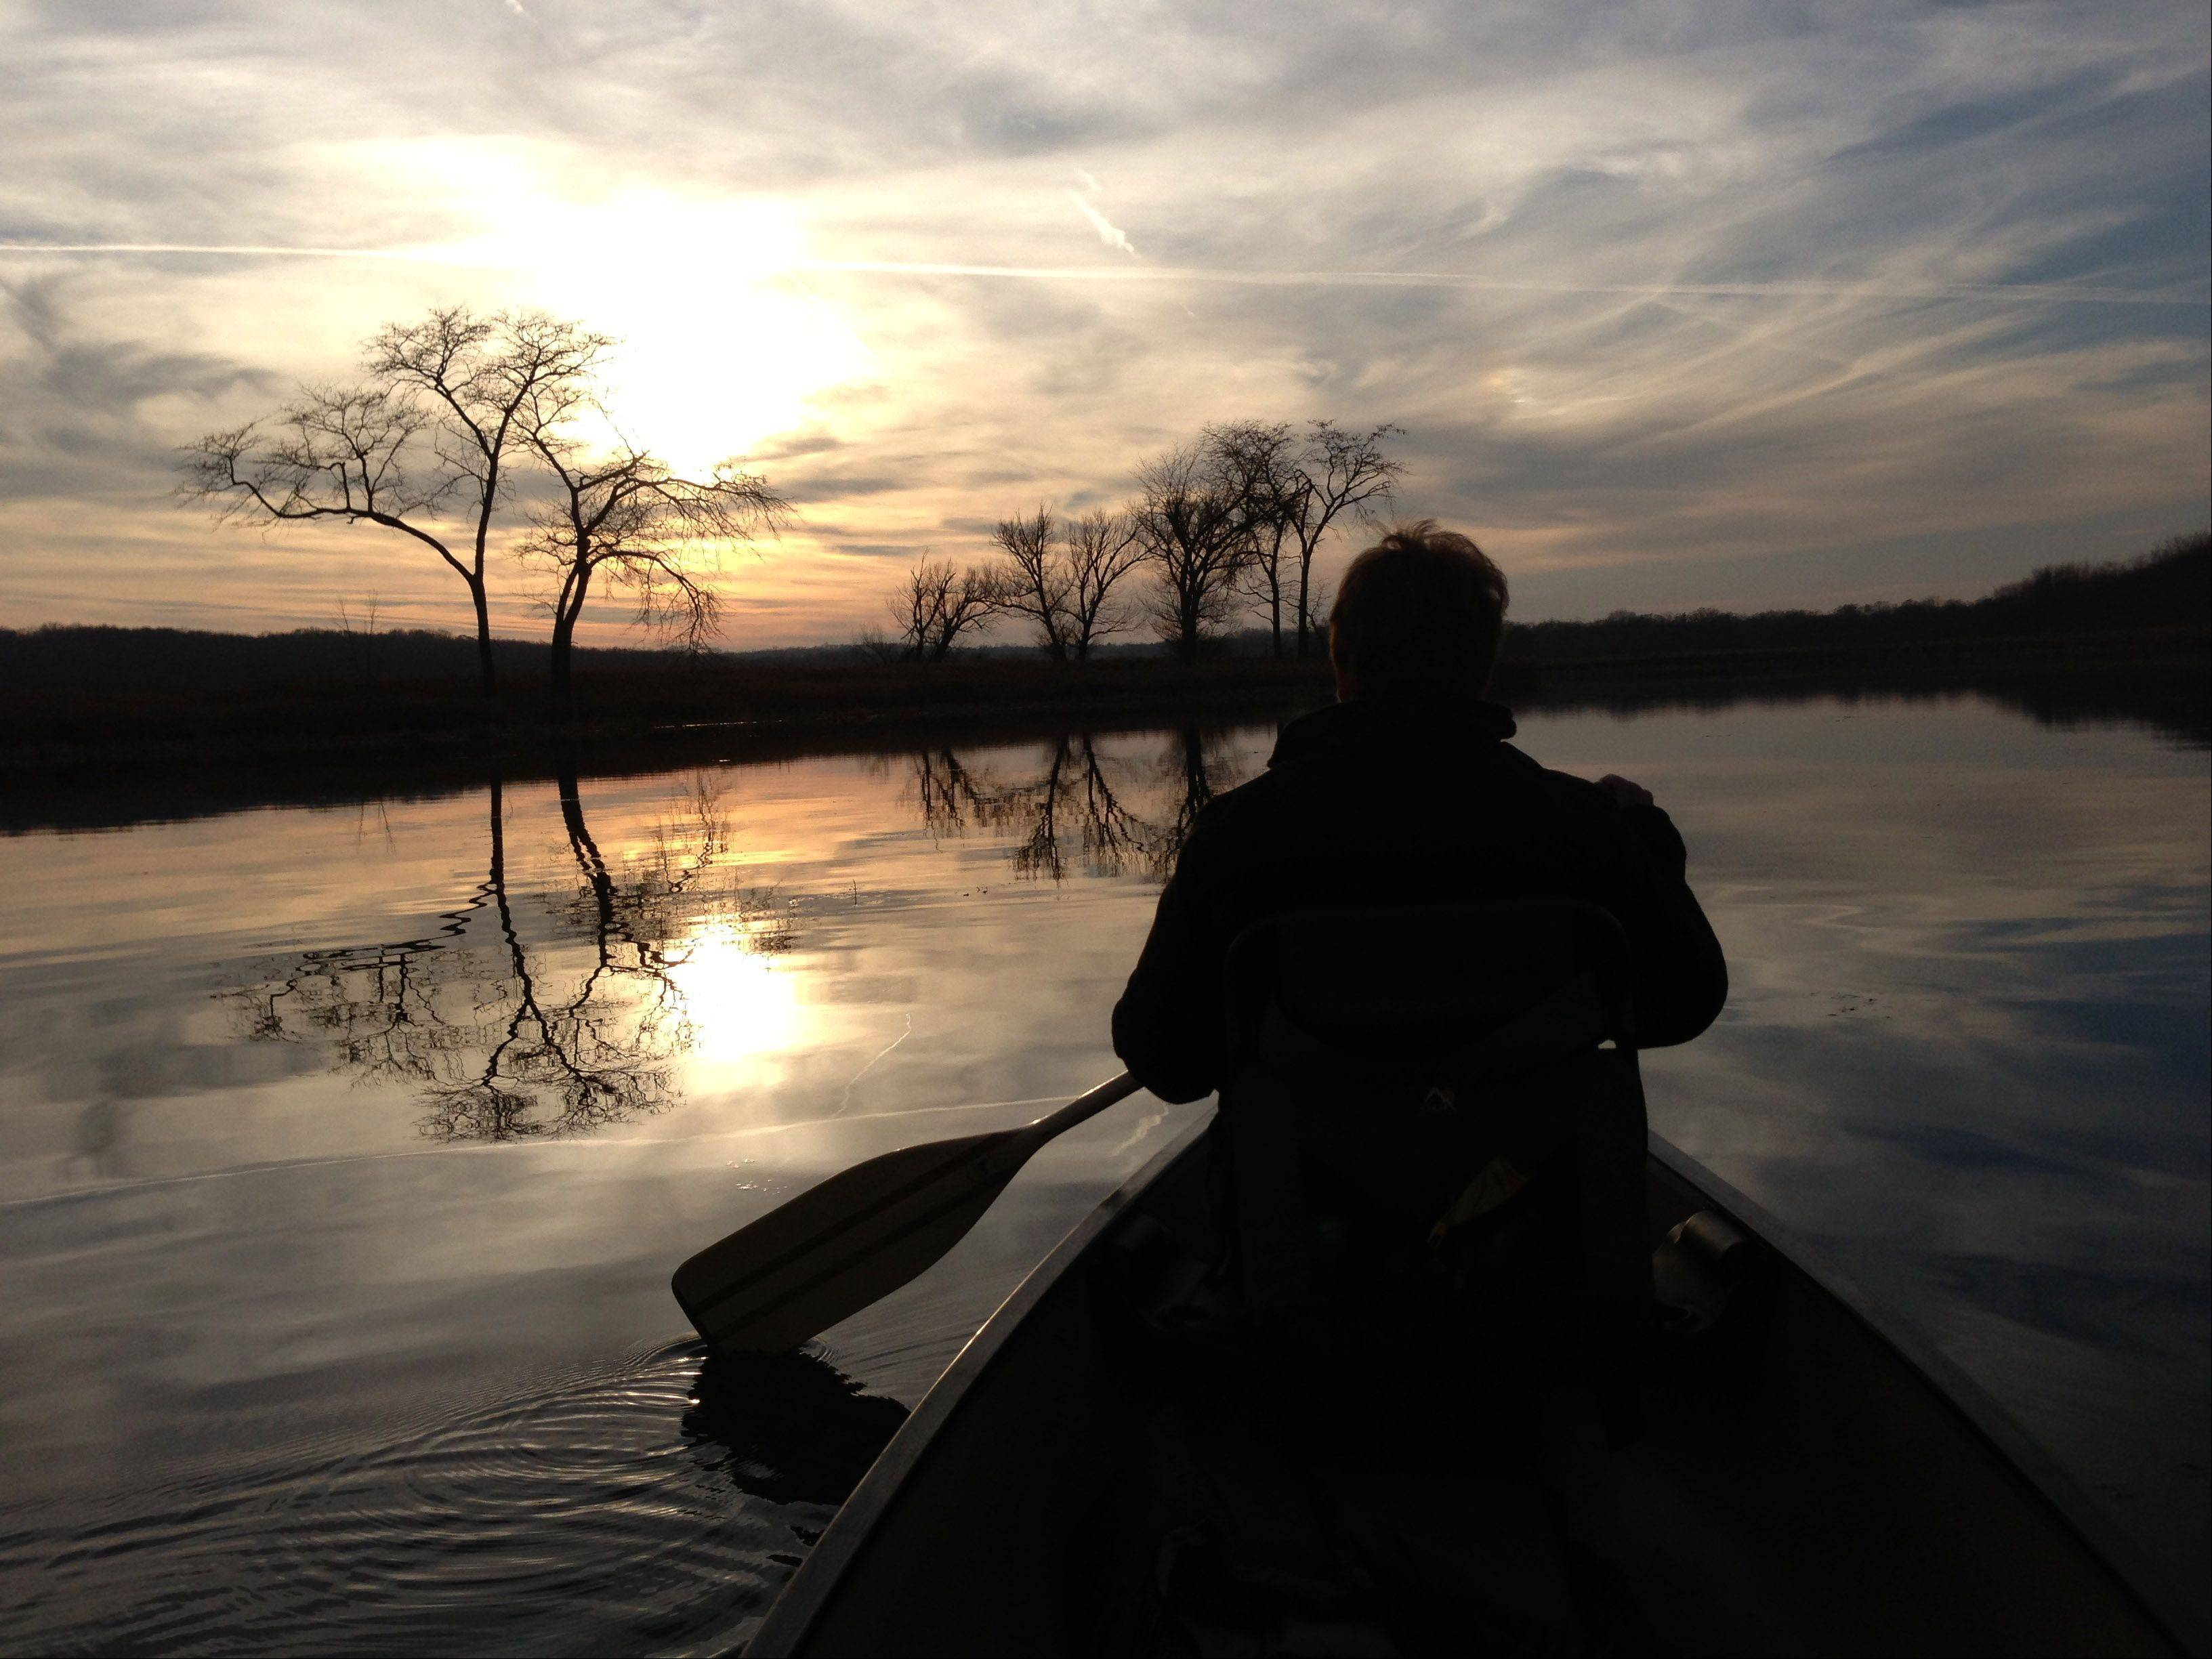 This photo is taken on the Fox River near Cary. We took a late afternoon paddle and watched the sunset. Peaceful.